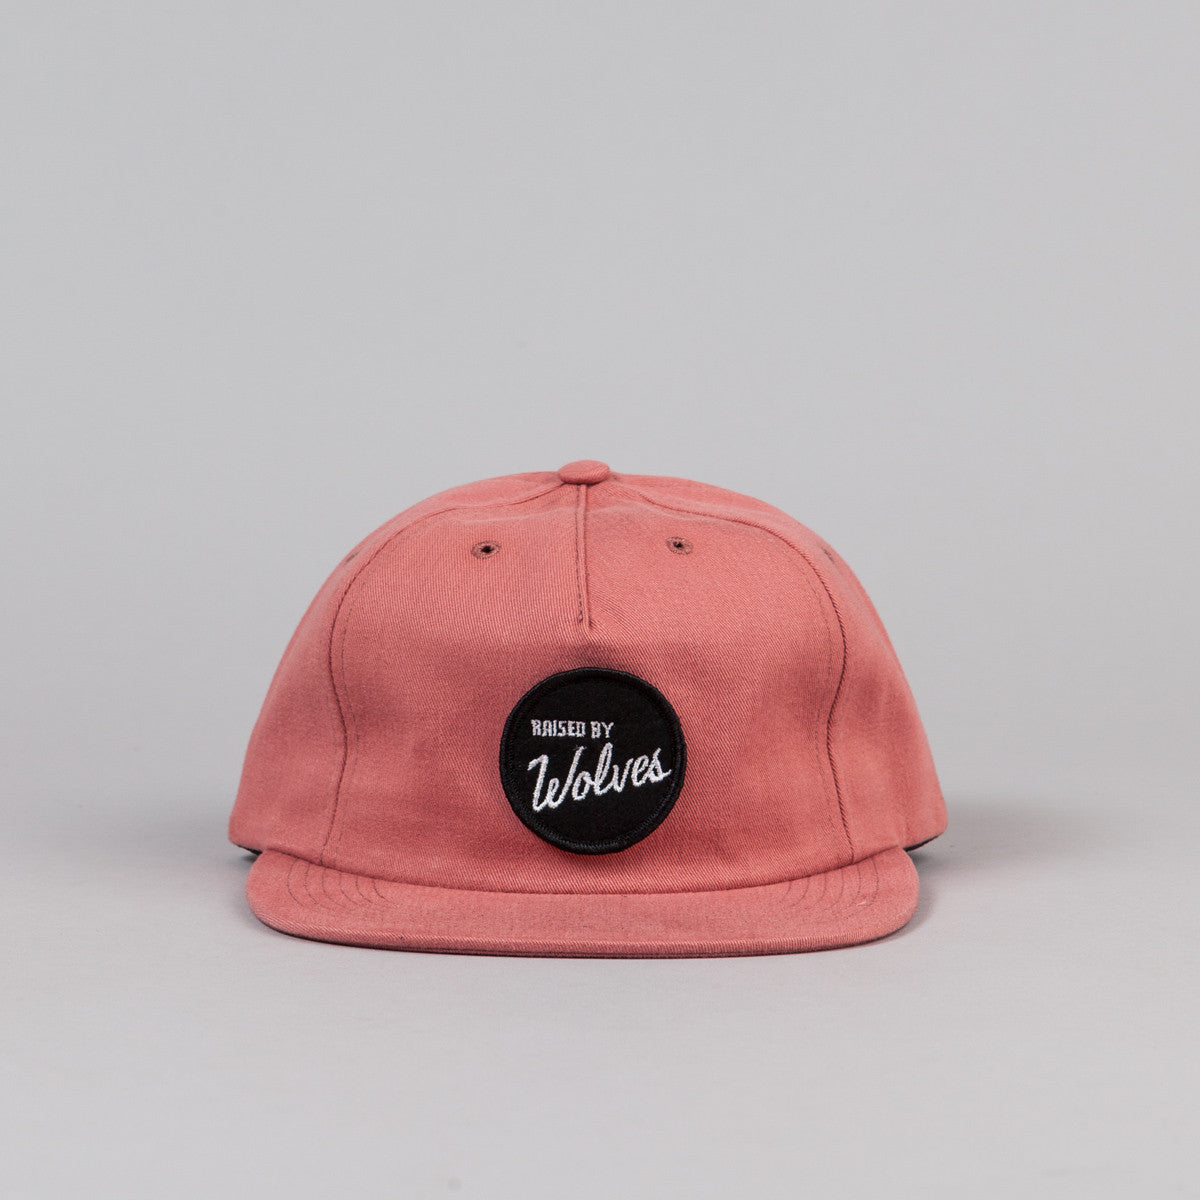 Raised By Wolves Varsity Polo Cap - Clay Sanded Brush Twill